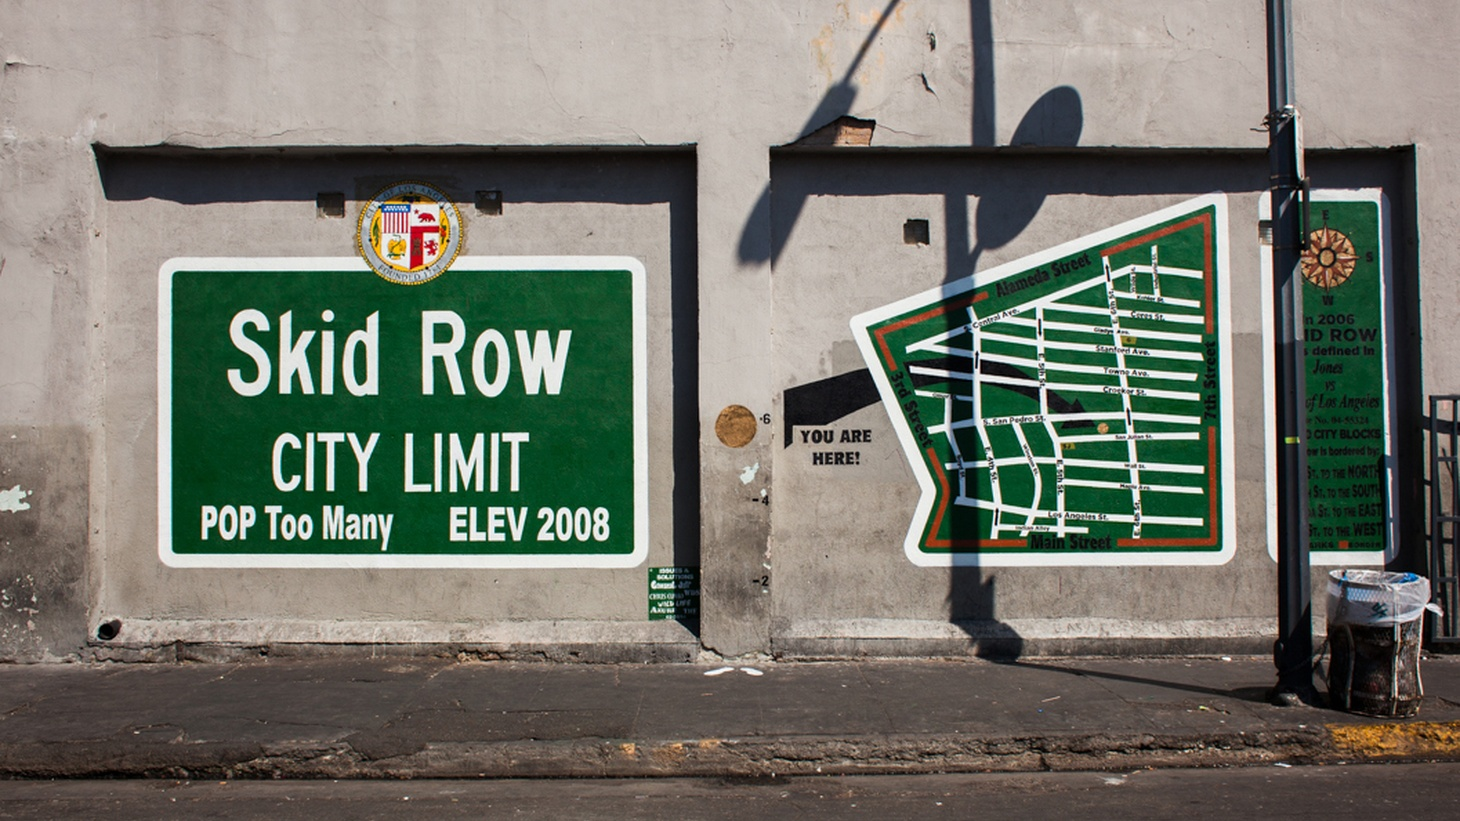 On Skid Row, the police shooting of a homeless man on Sunday is still reverberating. What have we learned about the dead man since yesterday, and what's the city doing to help the mentally ill and chronically homeless on Skid Row?